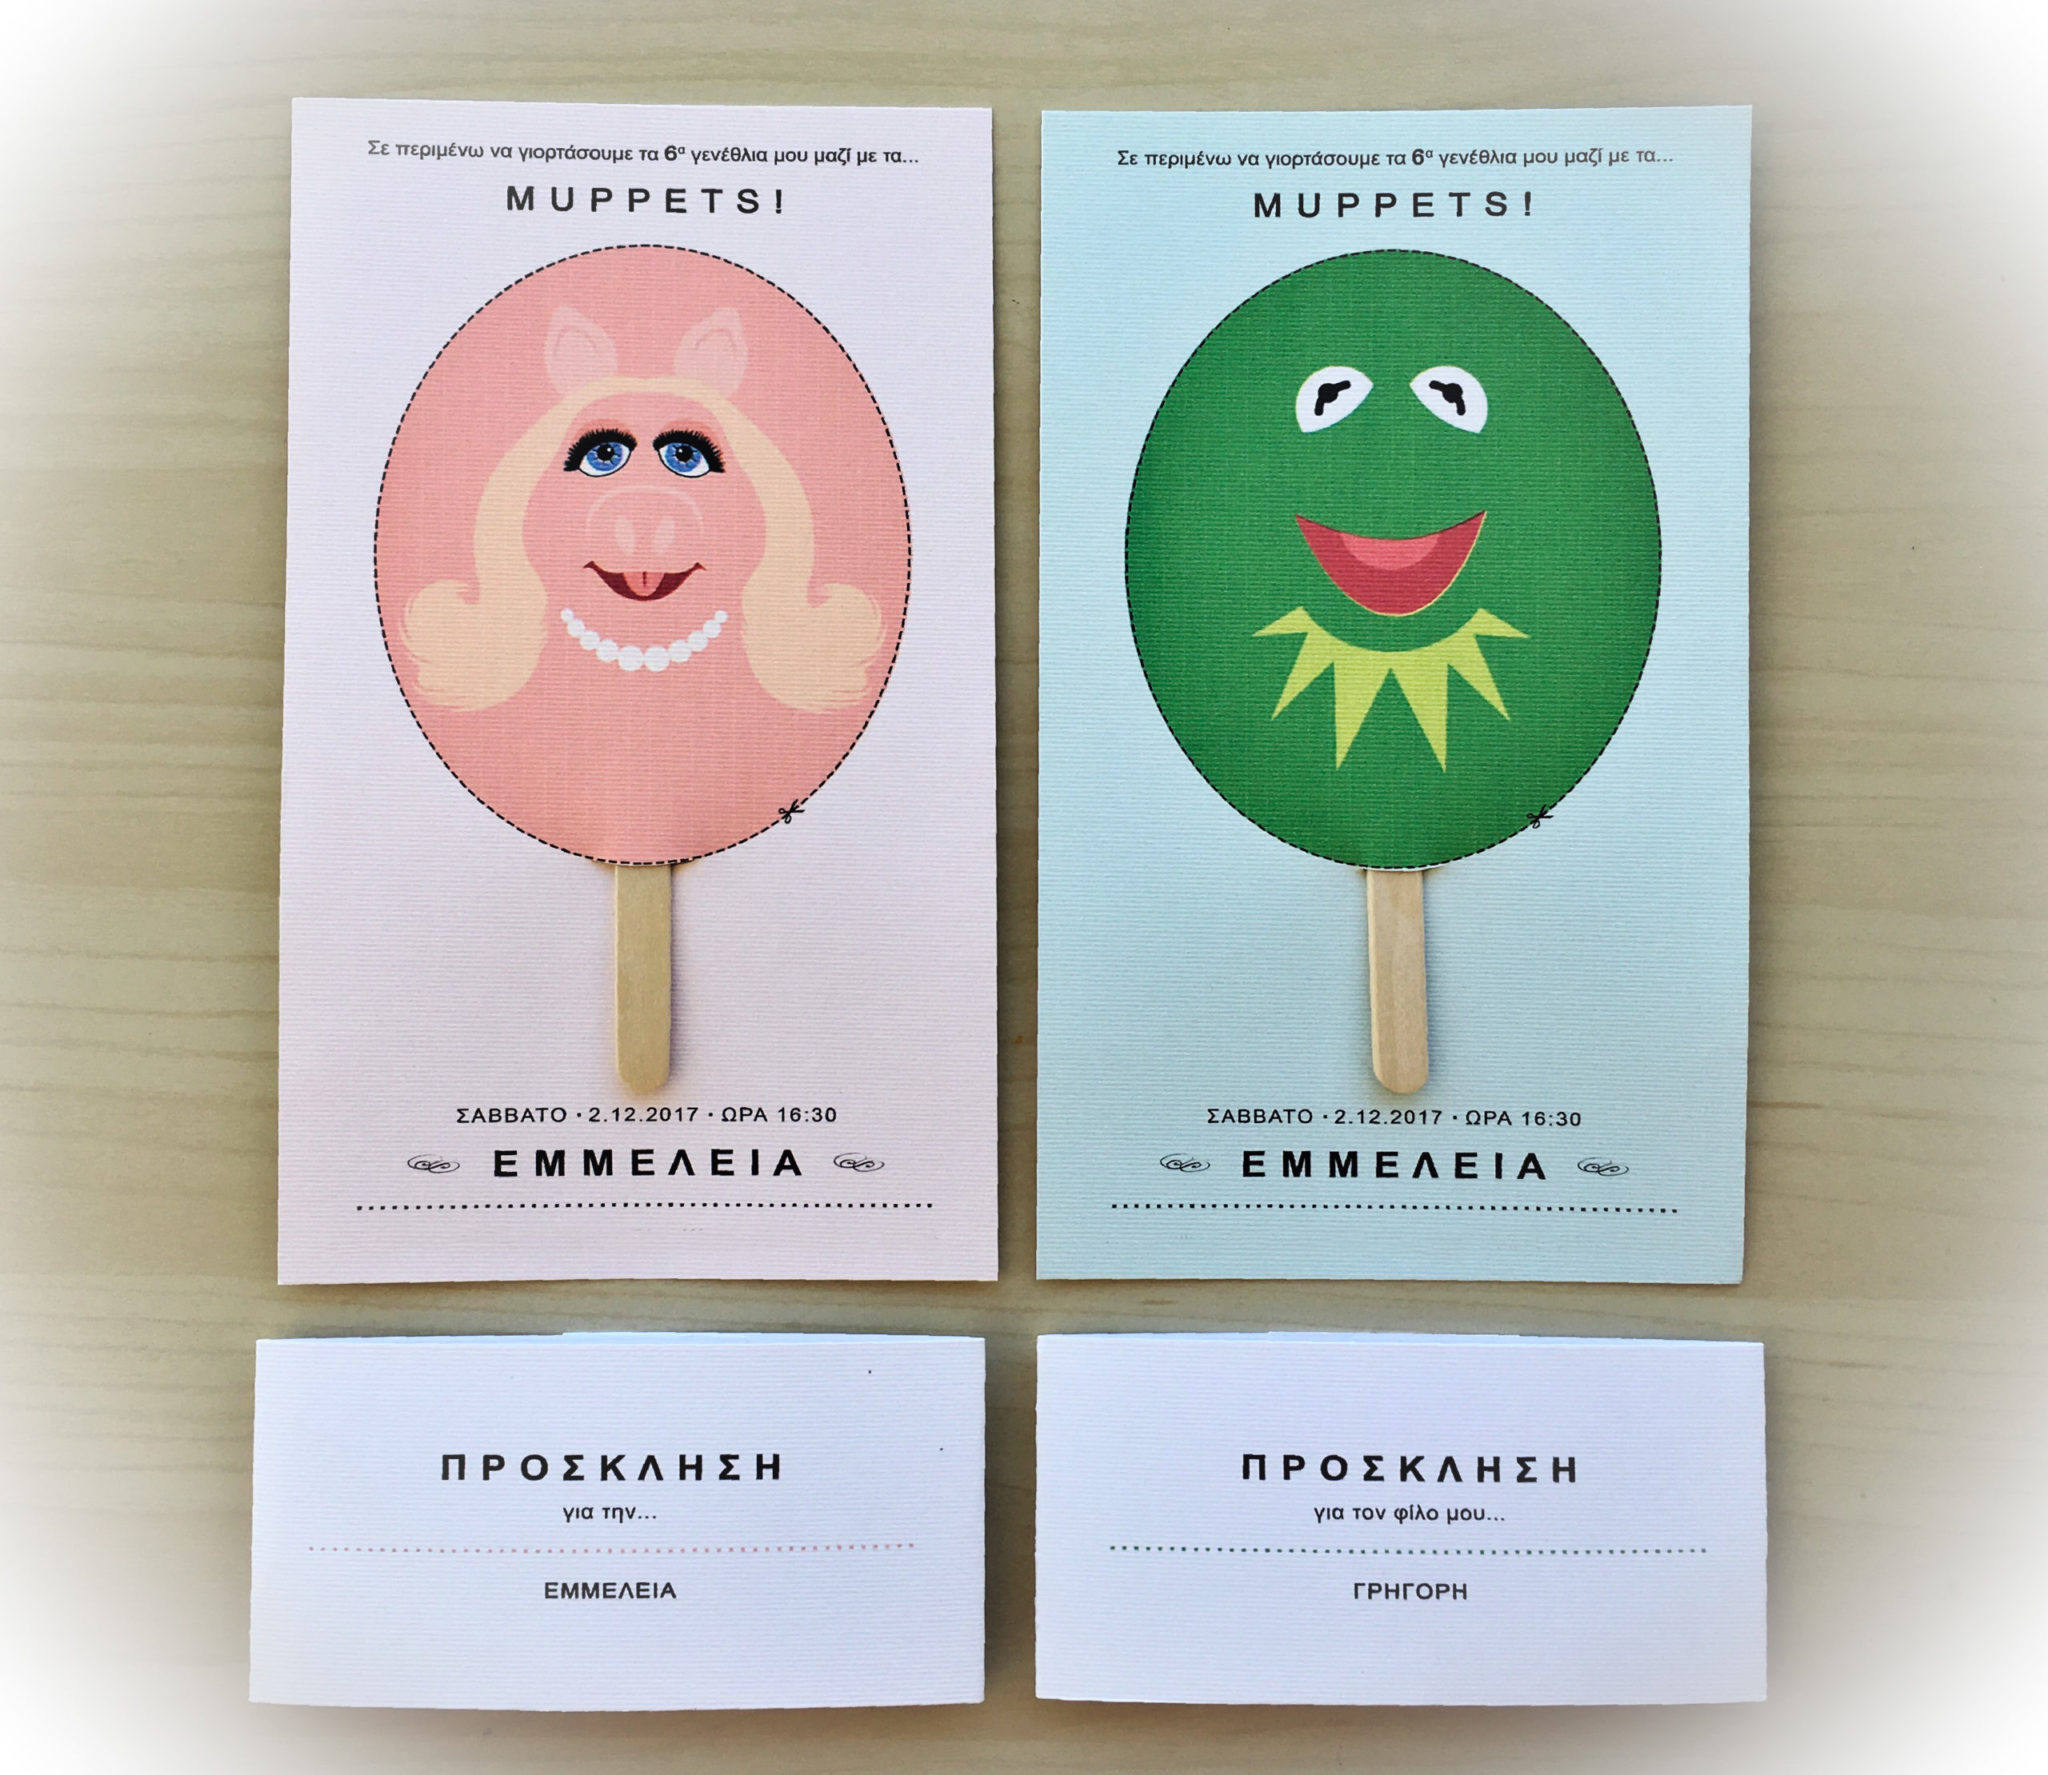 Meet The Muppets-party invitations